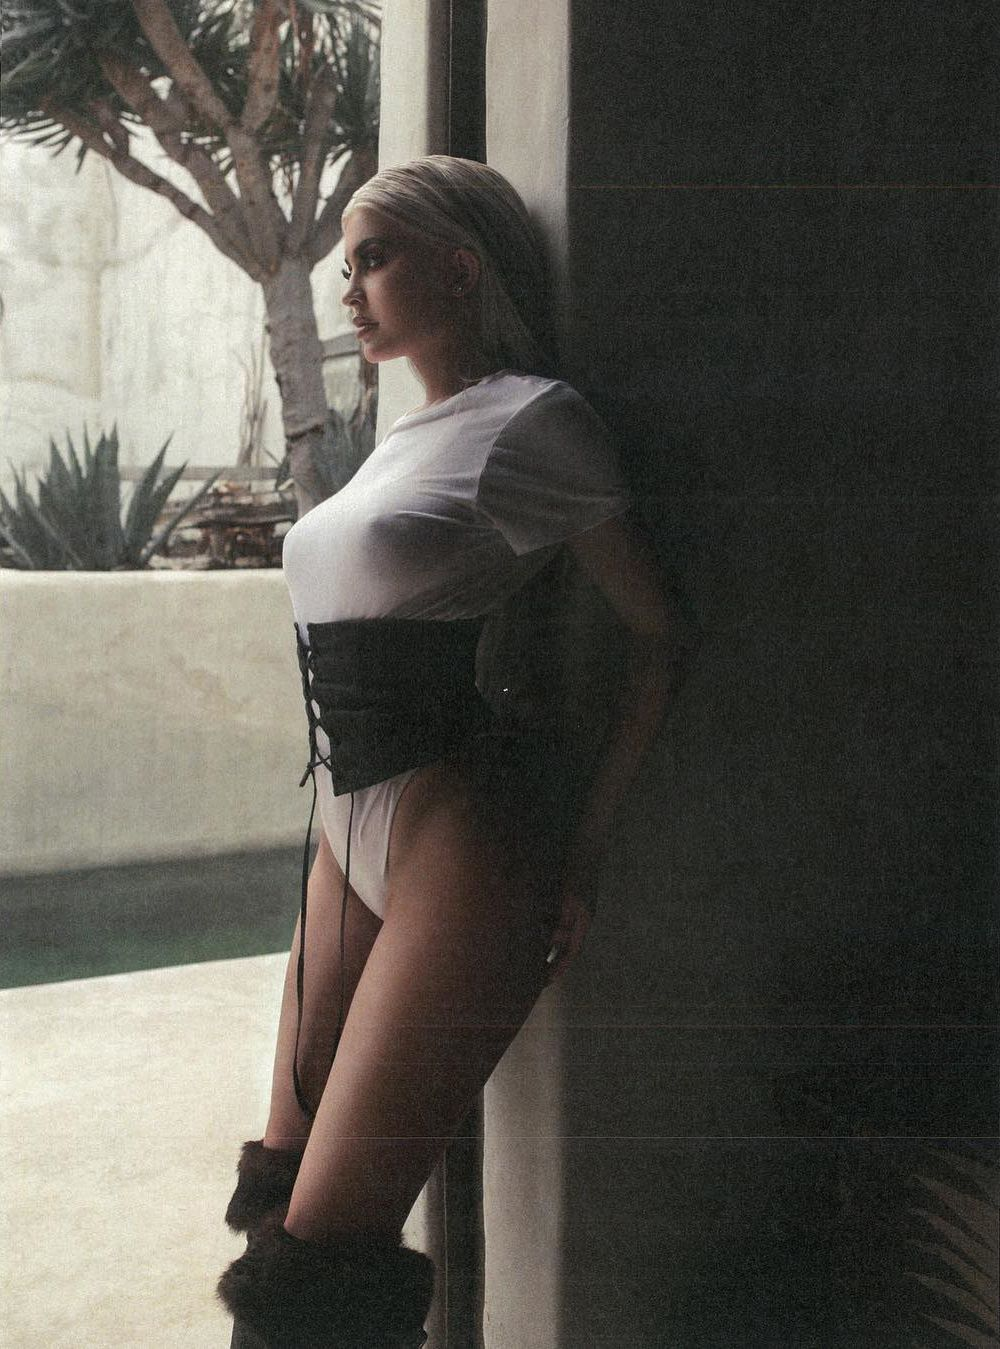 Kylie Jenner Nude & Sexy (183 Photos + Leaked PORN With Travis Scott & 2021 News)